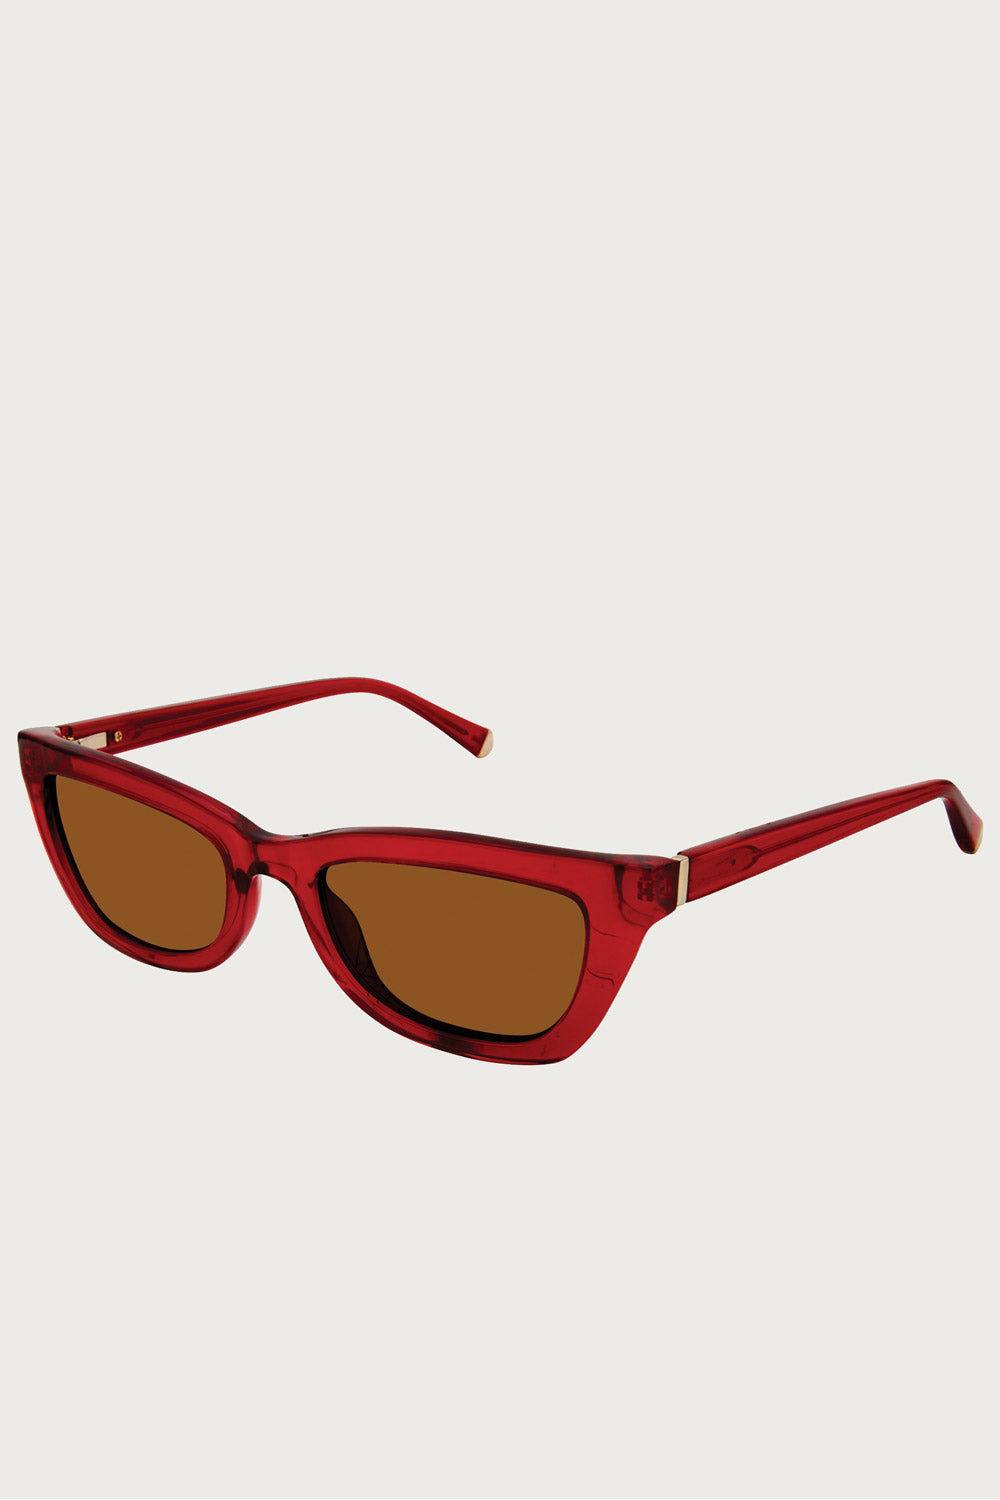 Kate Young For Tura Katia Sunglasses in Red - Vert & Vogue